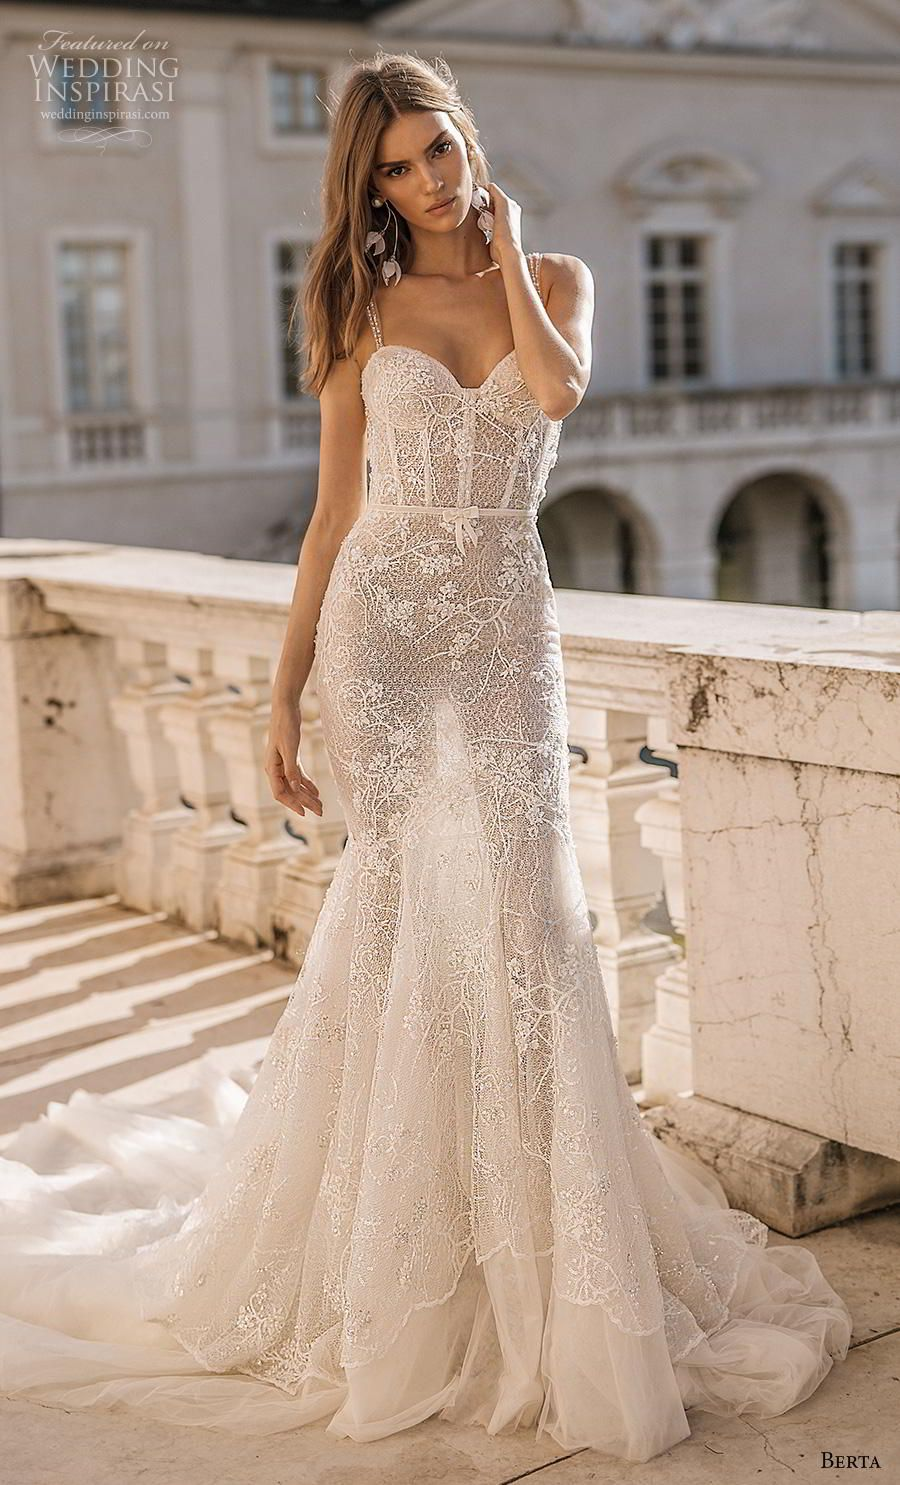 Berta Privée  Wedding Dresses  Wed  Pinterest  Wedding